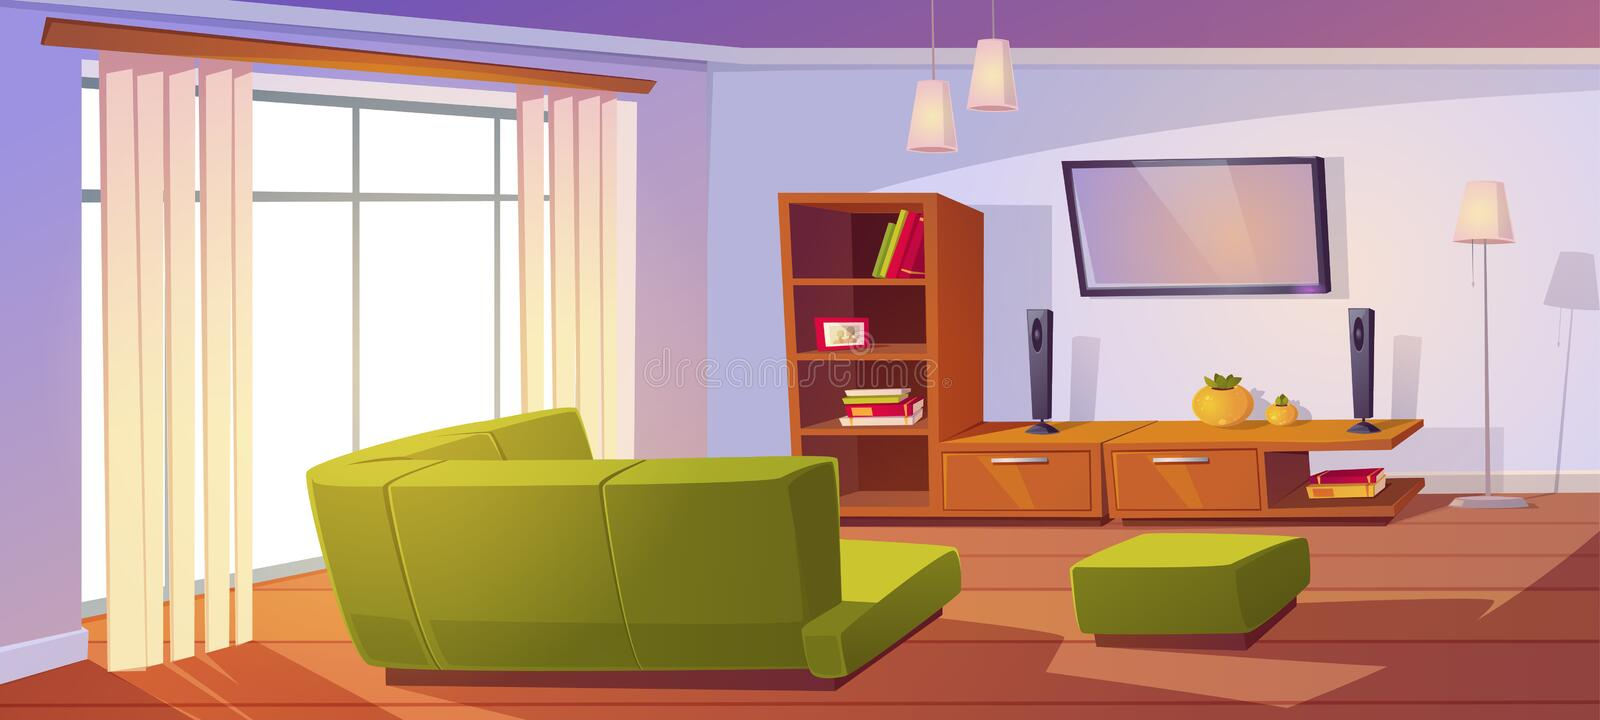 Cartoon Tv Wall Stock Illustrations 520 Cartoon Tv Wall Stock Illustrations Vectors Clipart Dreamstime